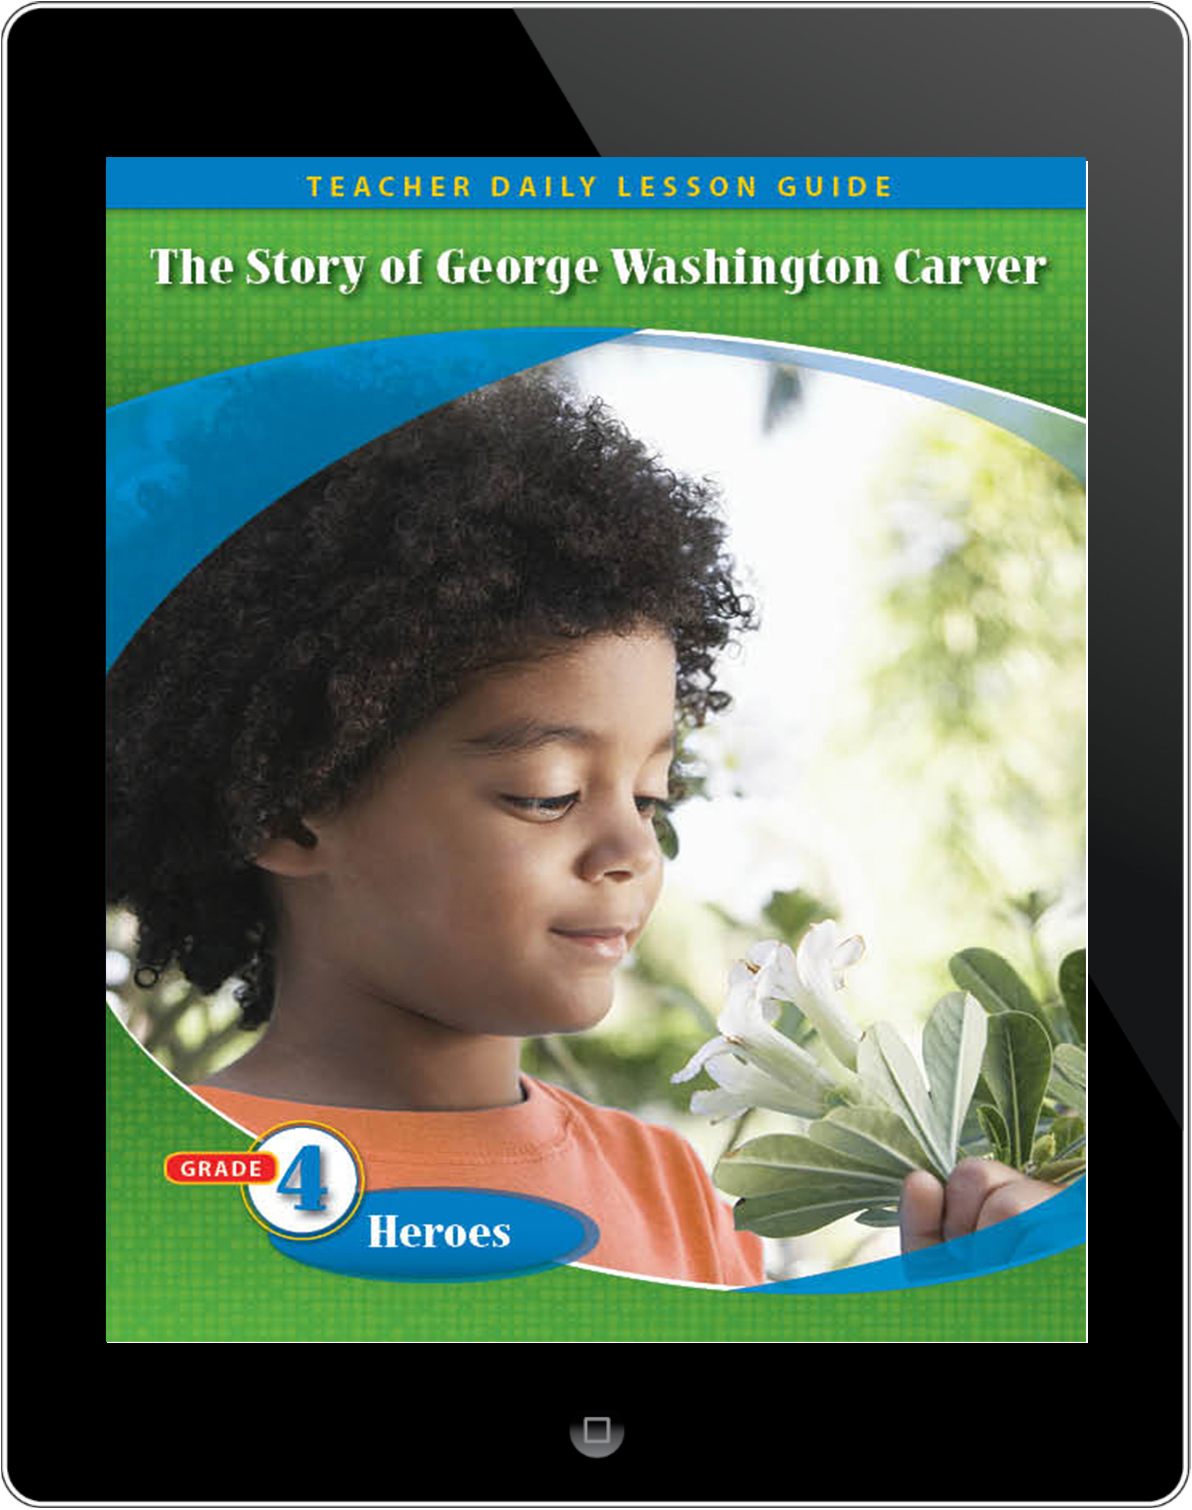 Pathways2.0 Grade 4 Heroes Unit: The Story of George Washington Carver Daily Lesson Guide 5 Year License